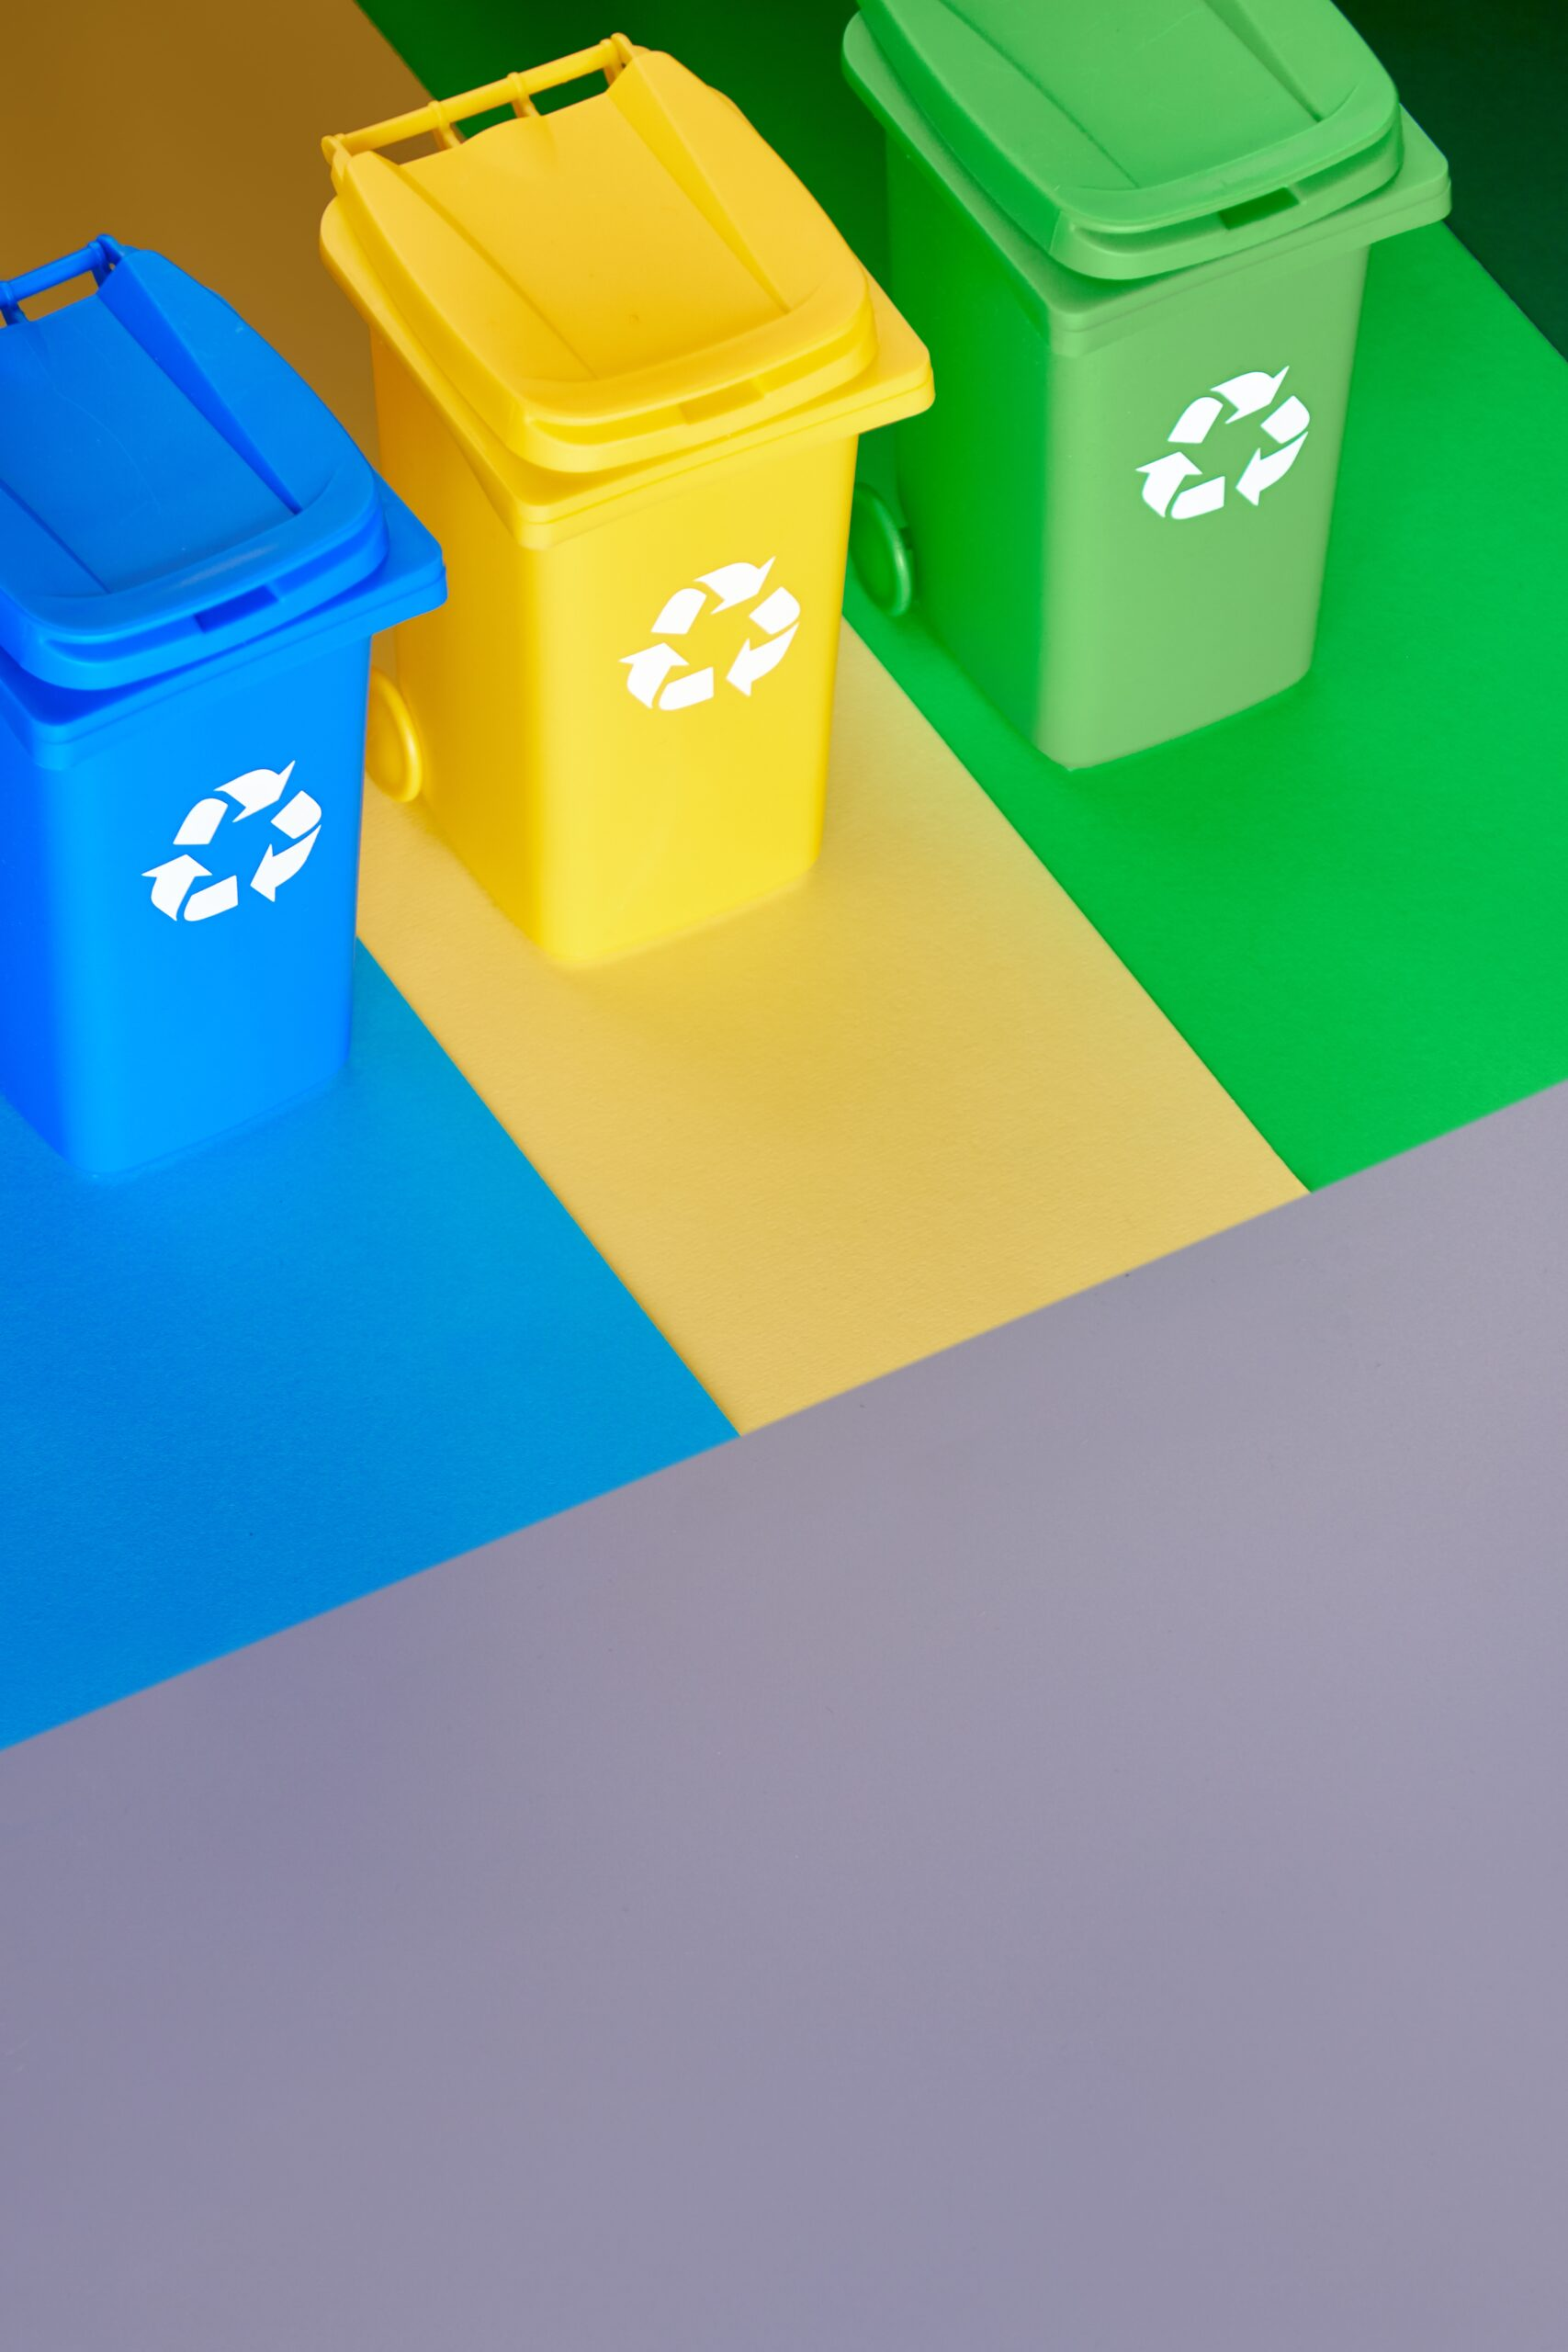 three-color-coded-recycle-bins-isometric-picture-o-7MR3VW9